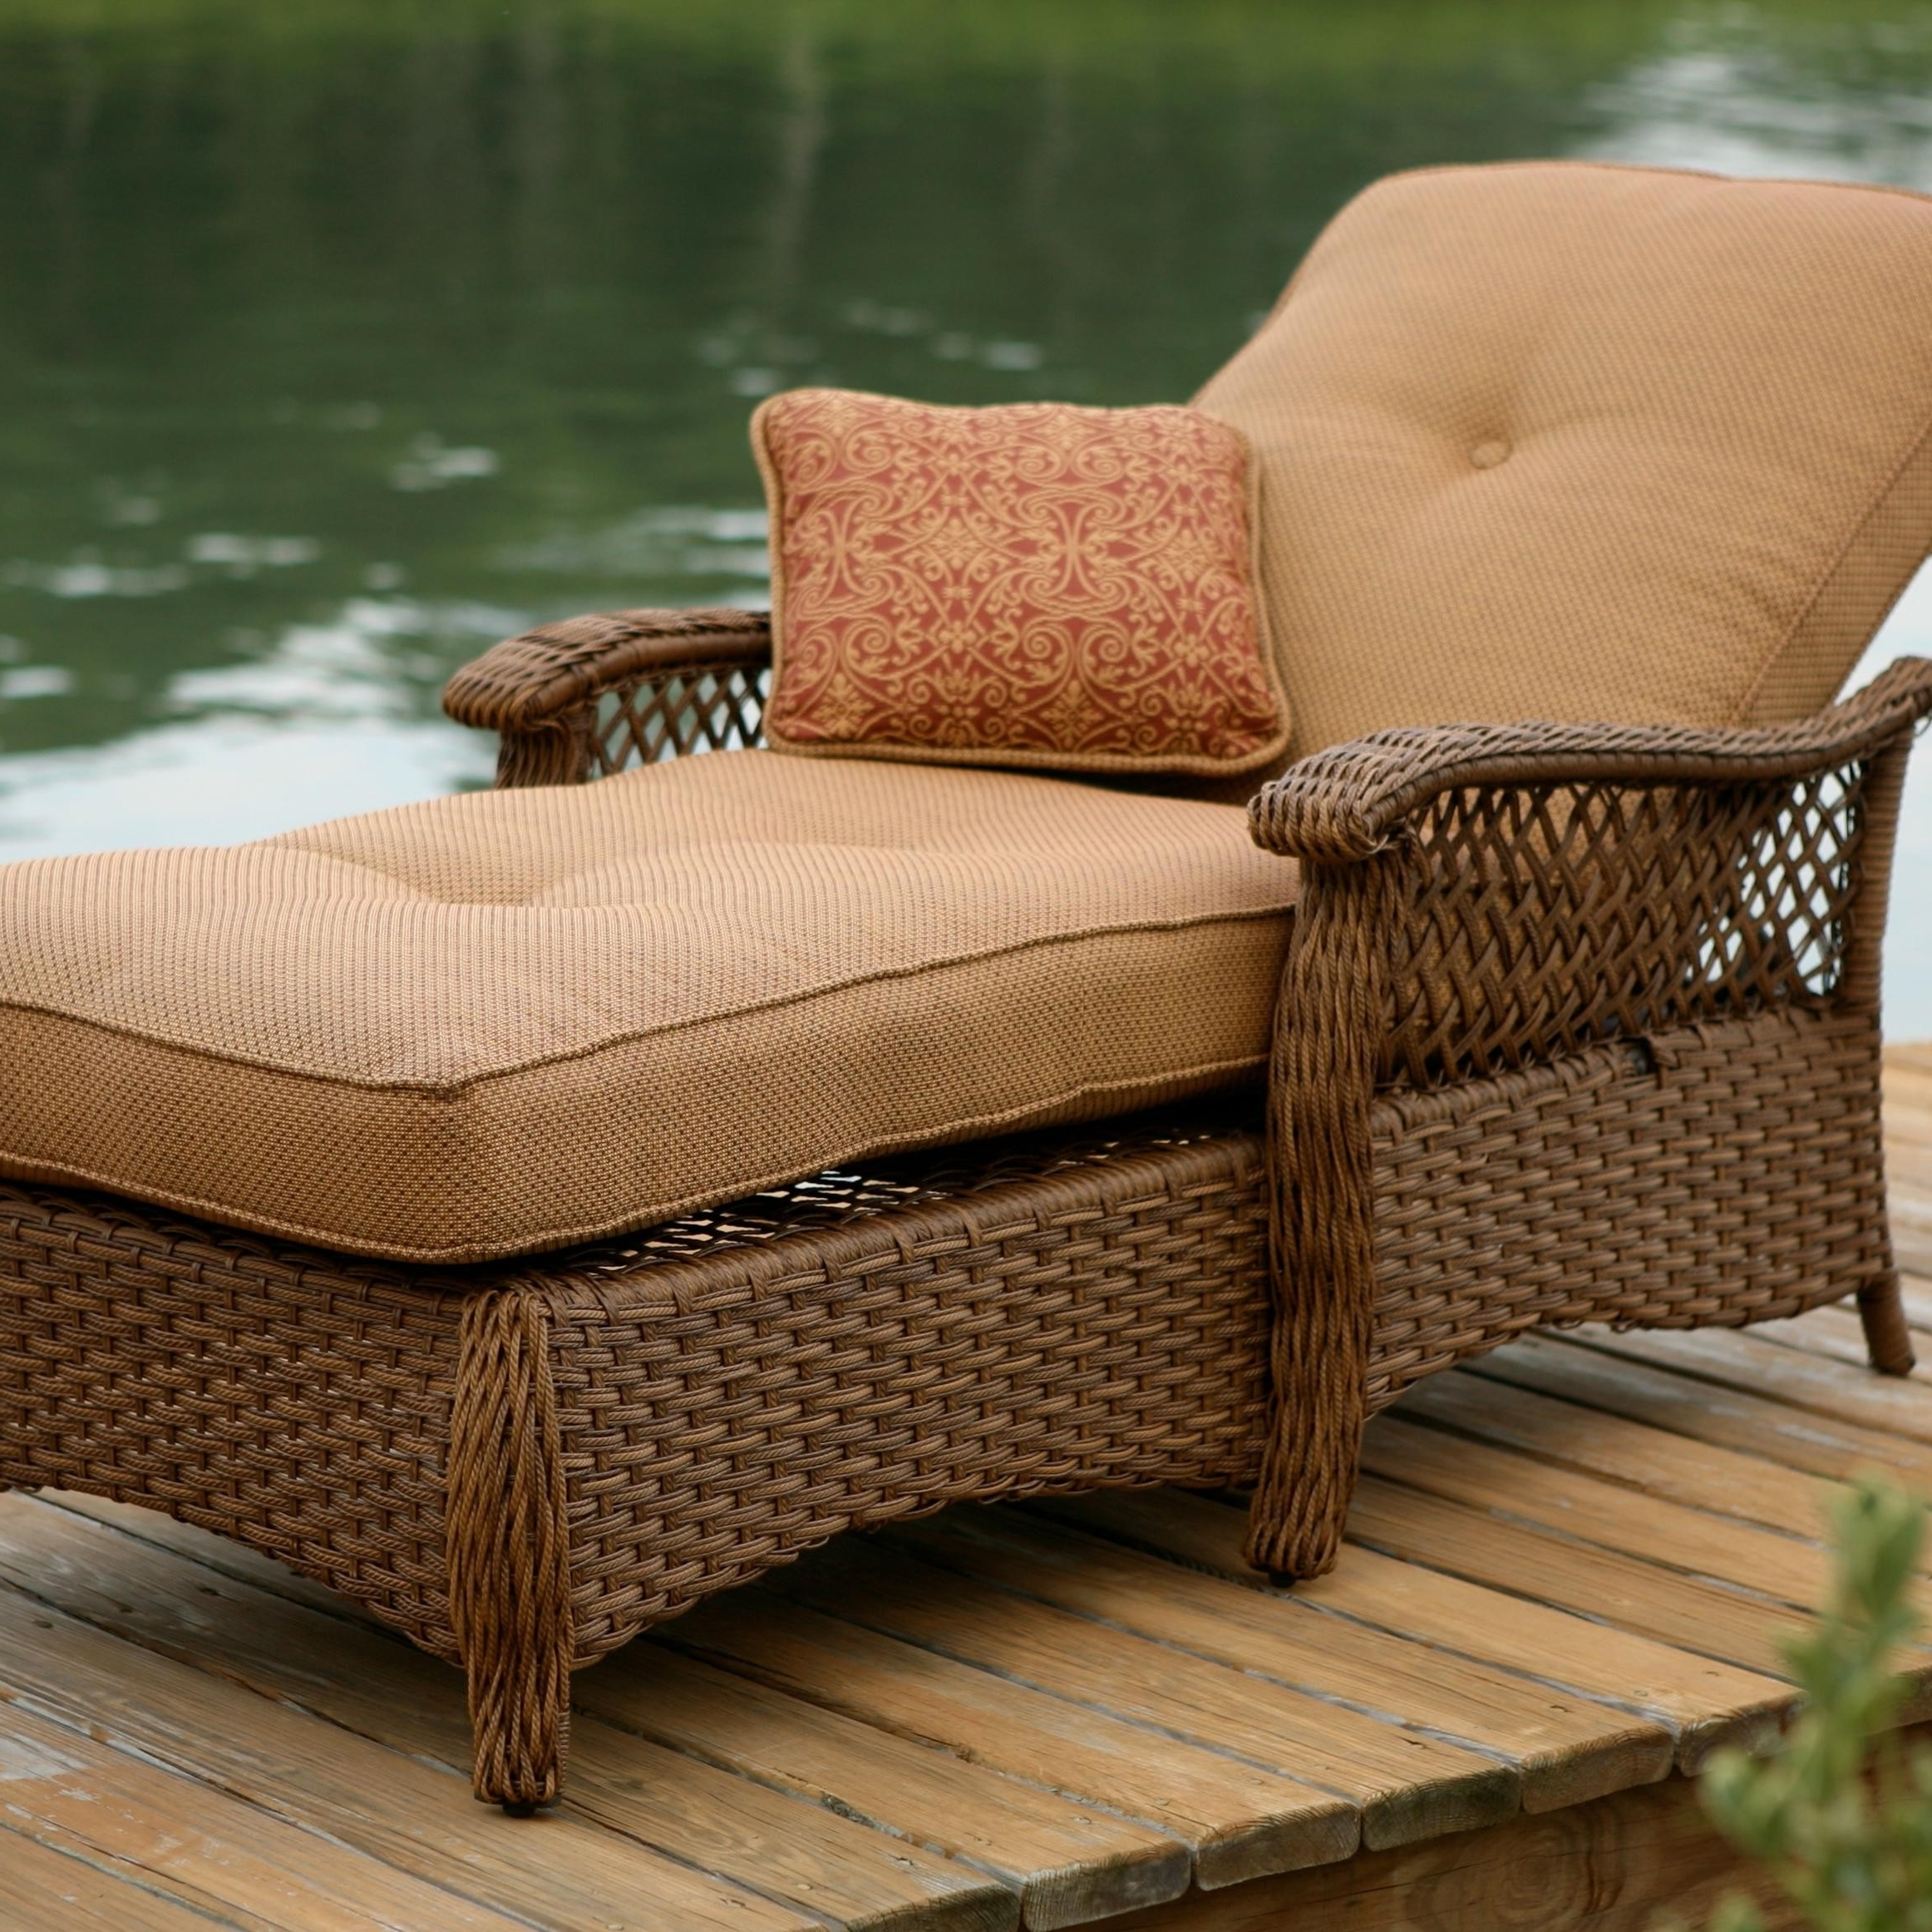 Furniture : 3 Seater Chaise Lounger Chaise Lounge For Sale Ontario For Latest Ontario Chaise Lounges (View 13 of 15)